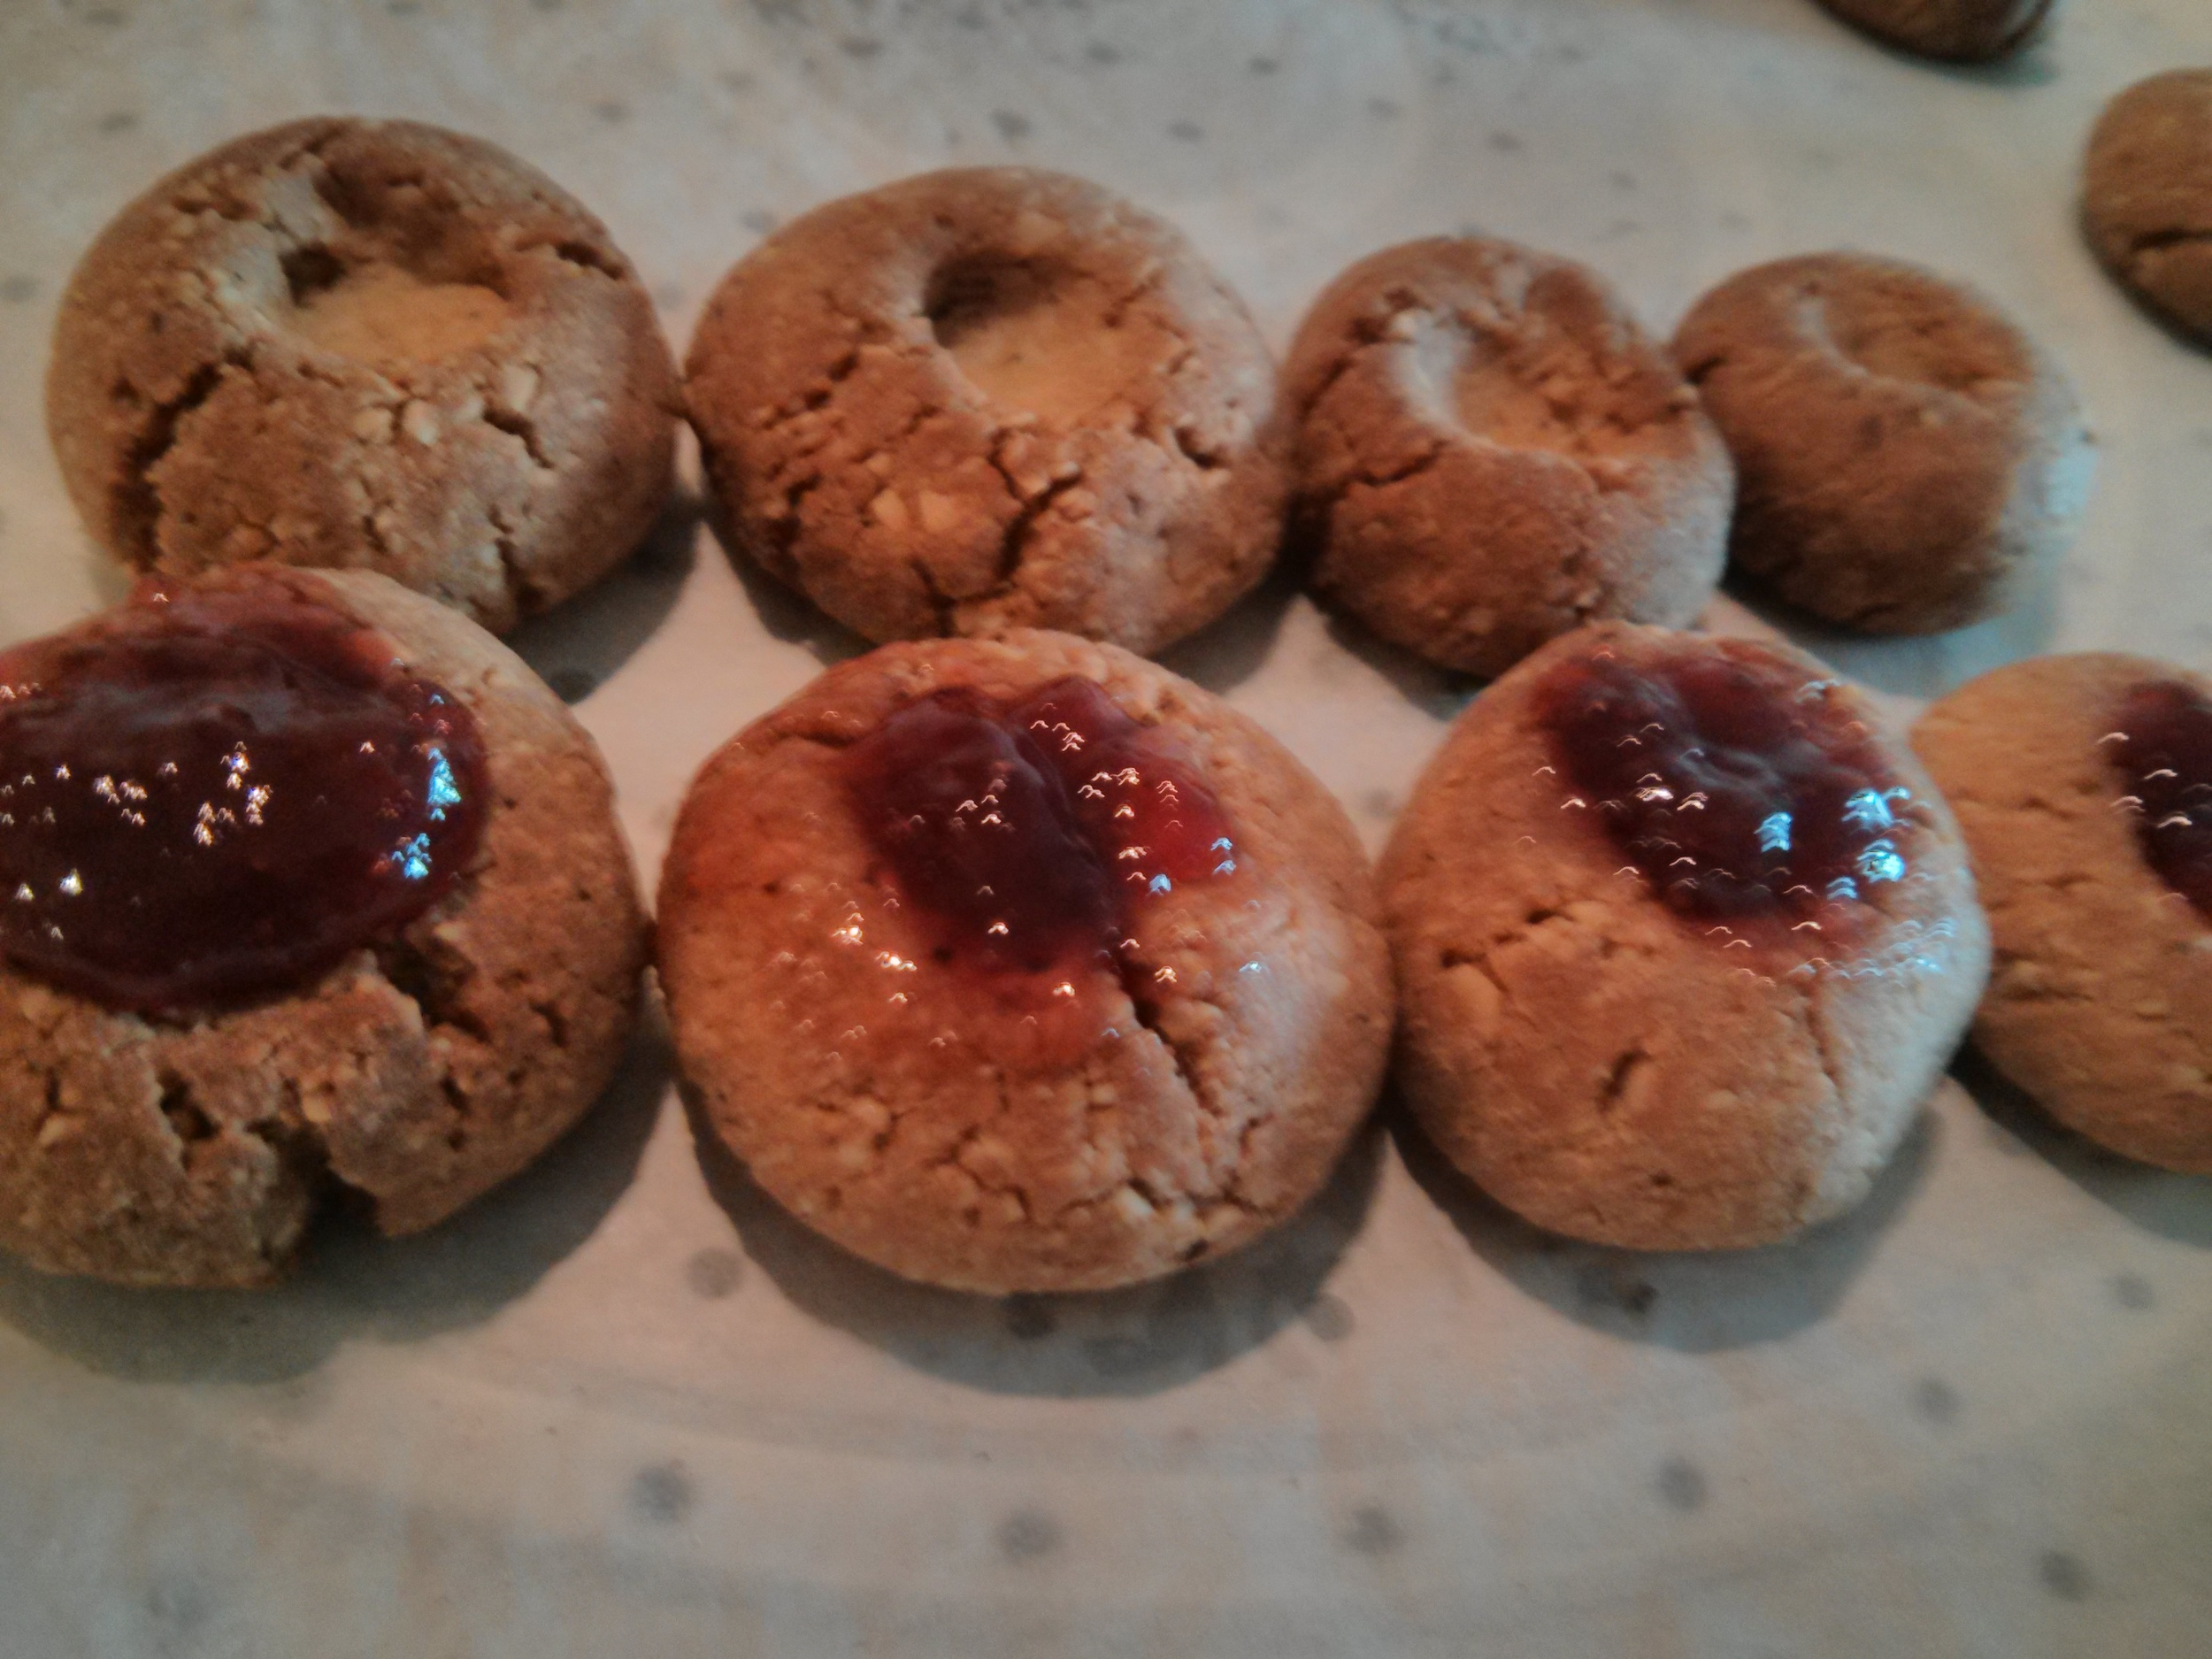 Some are filled with jam and ready to eat